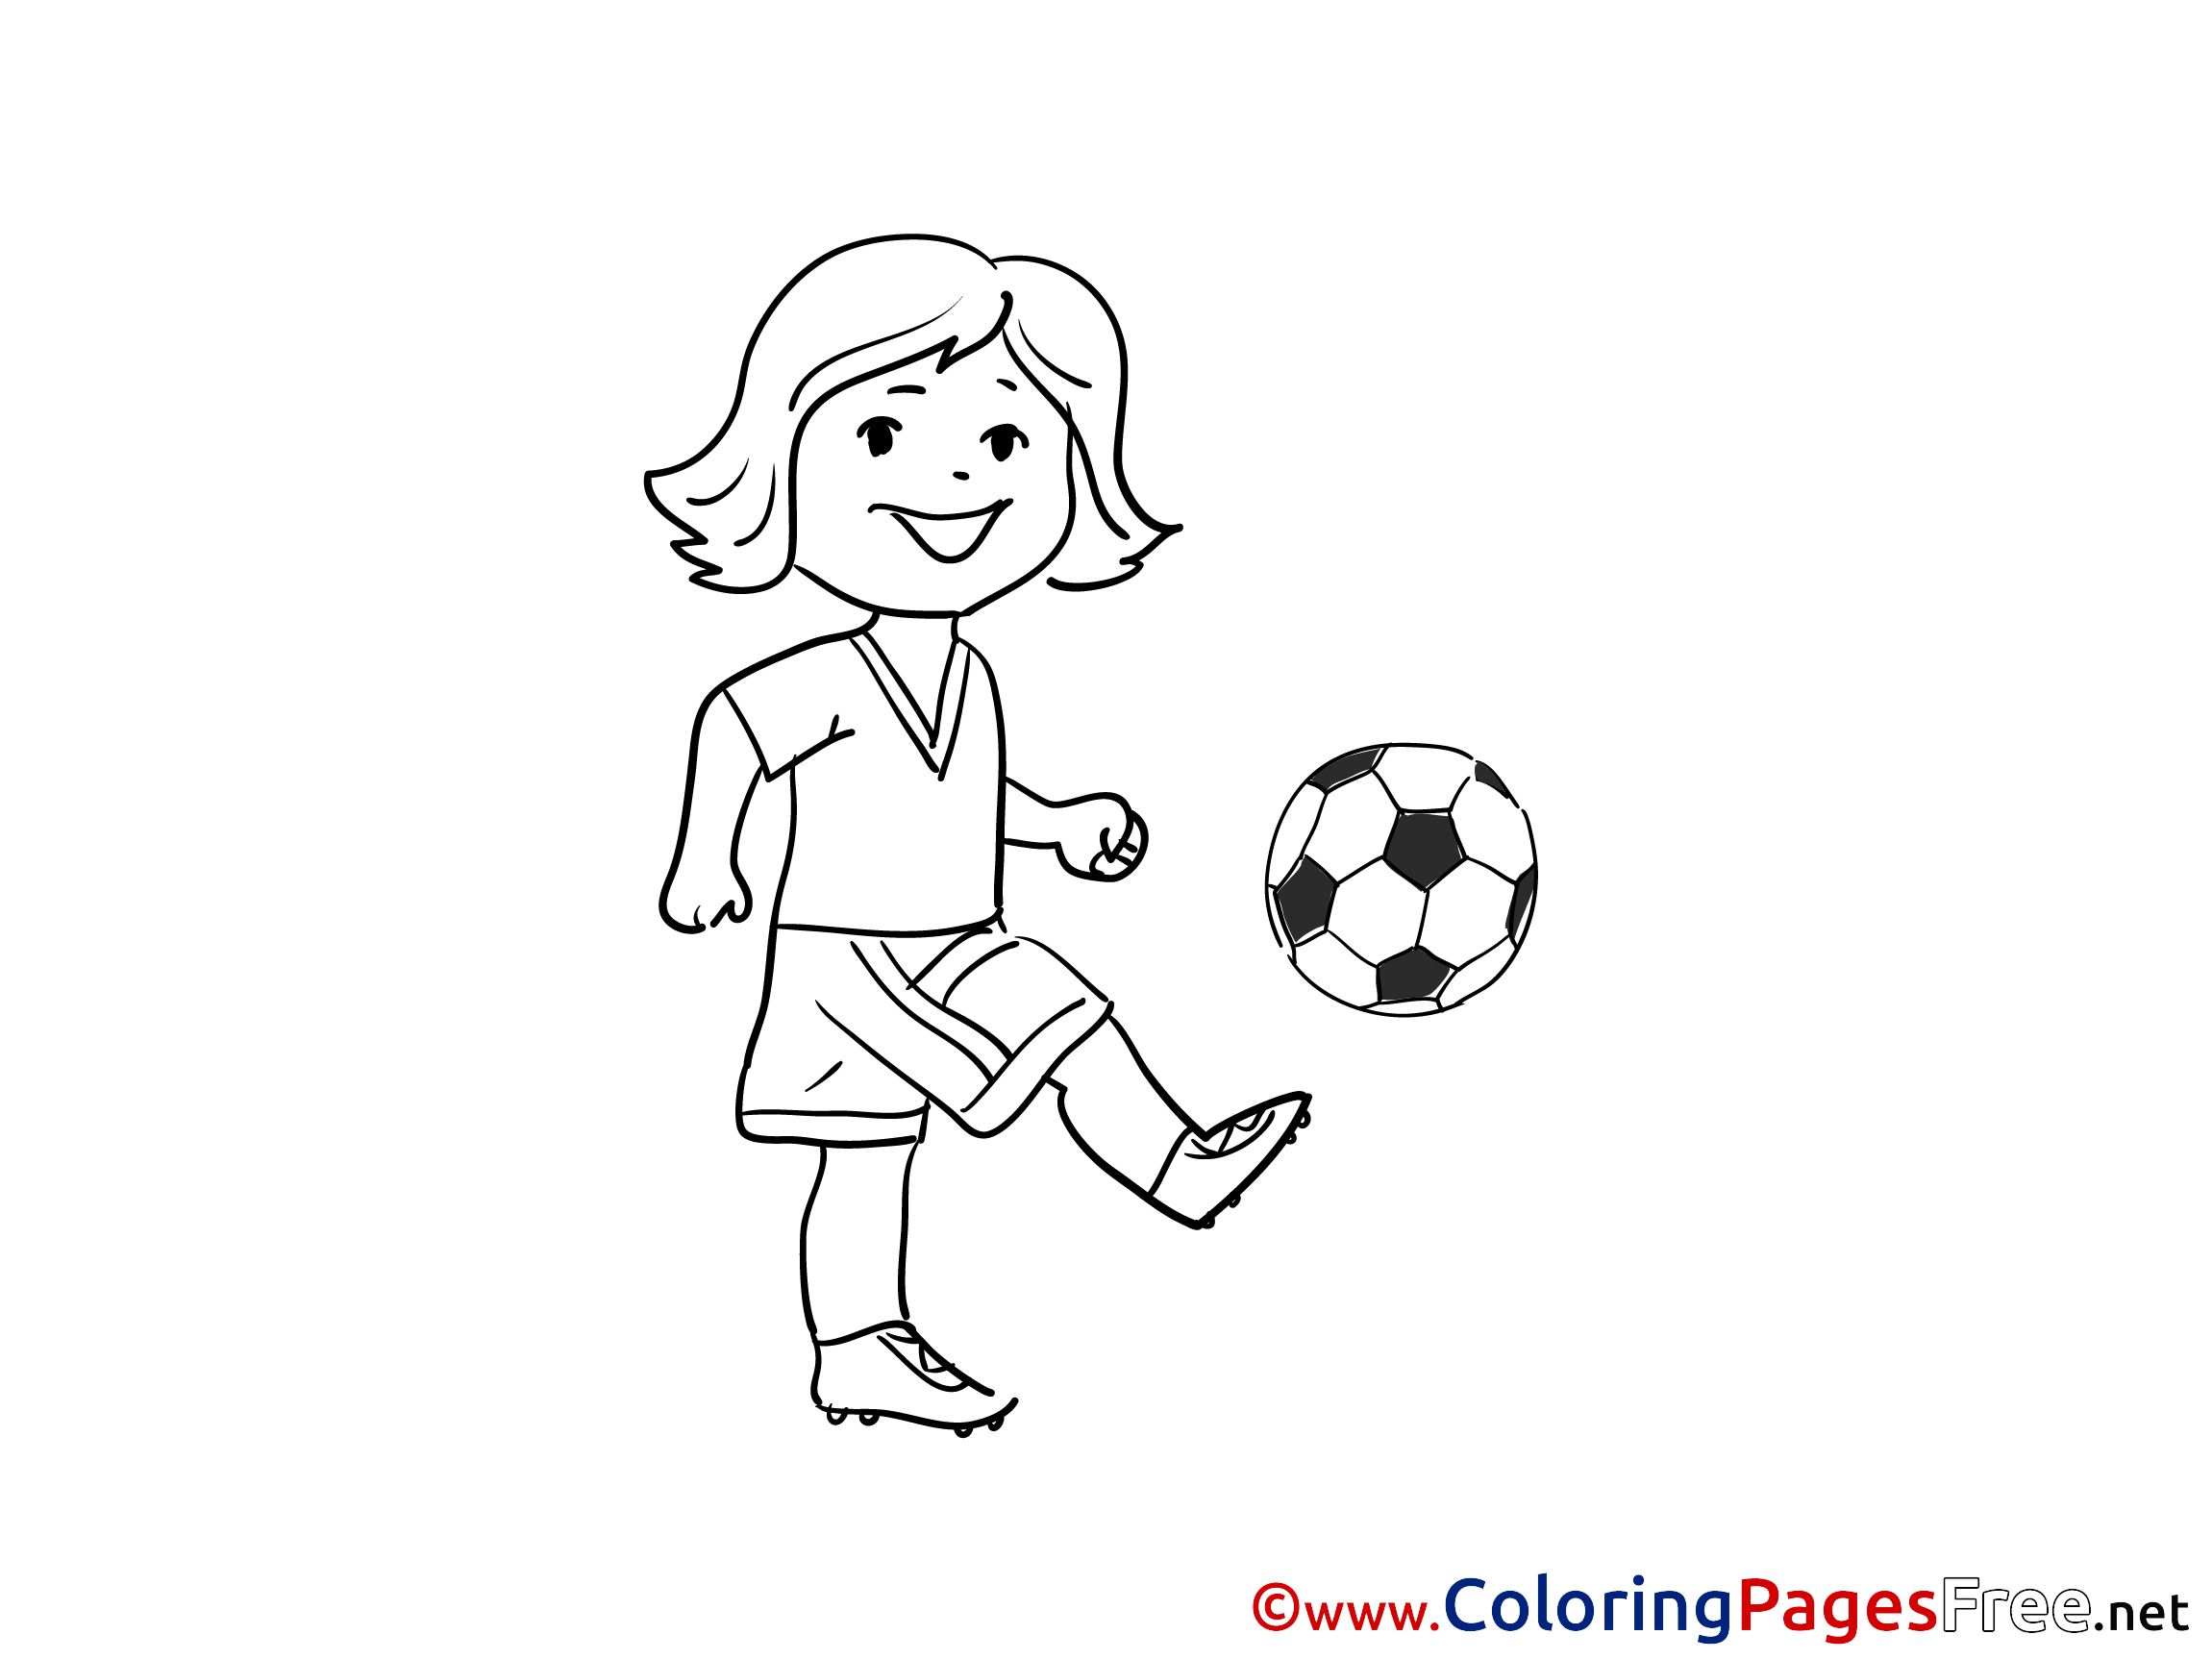 - Trick Football Girl Soccer Coloring Pages Free